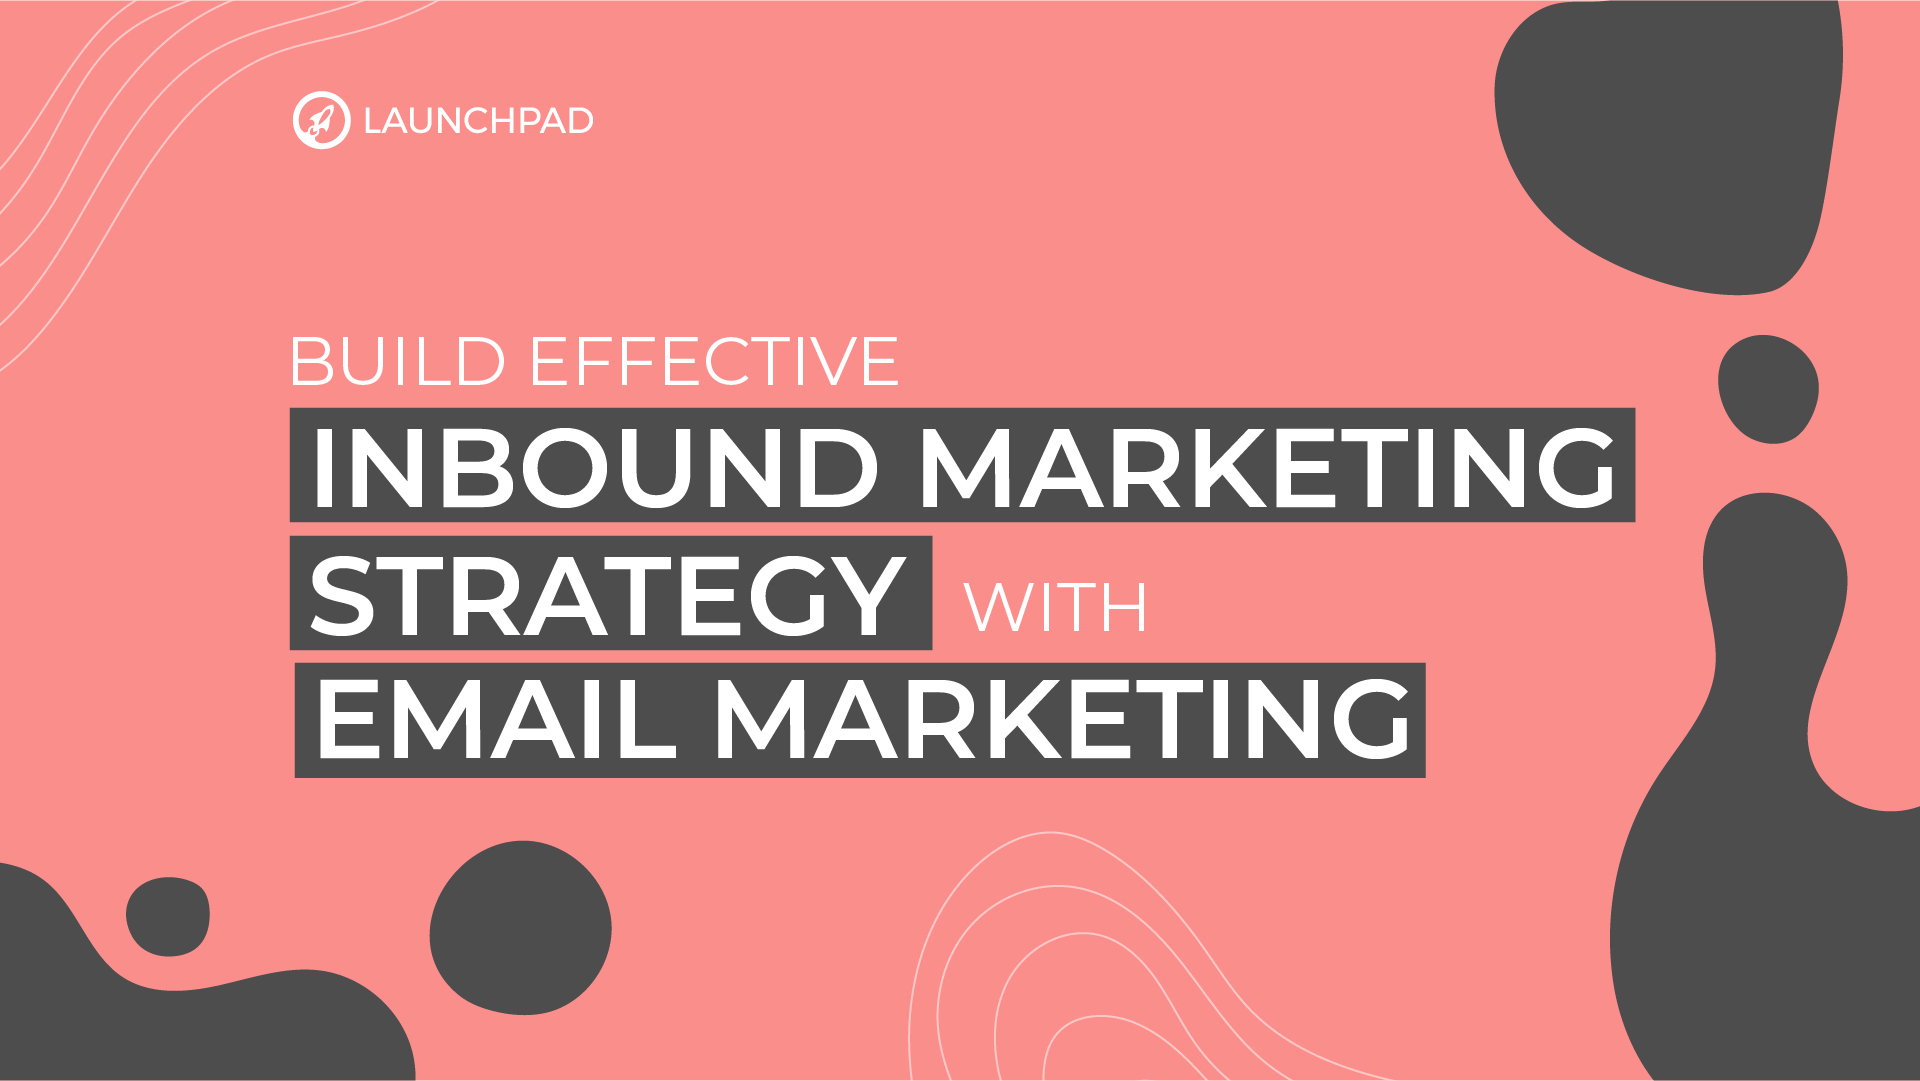 Build effective inbound marketing strategy with email marketing